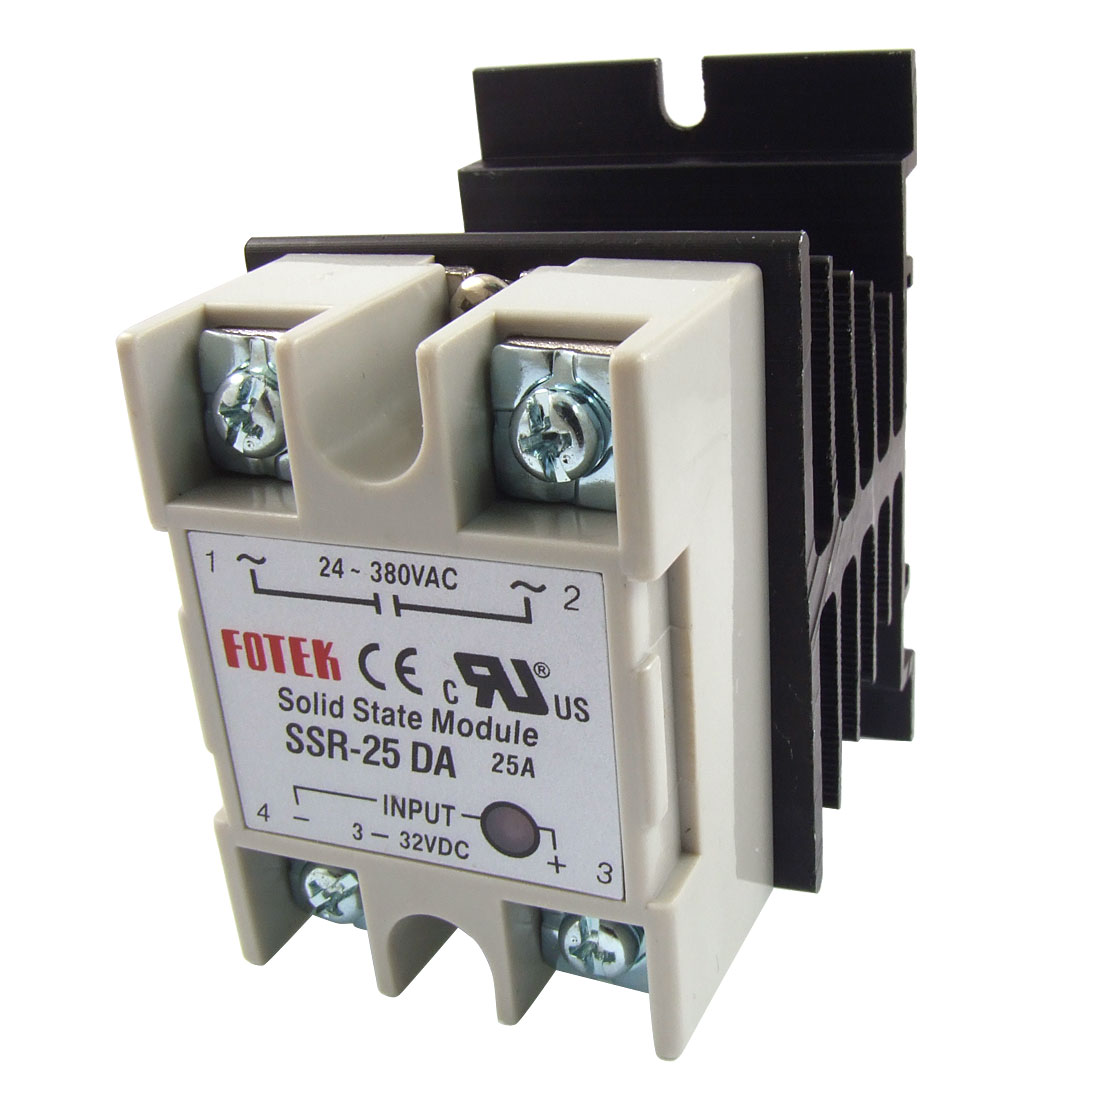 Single Phase Solid State Relay SSR-25DA 25A 3-32V DC 24-380V AC w Heat Sink